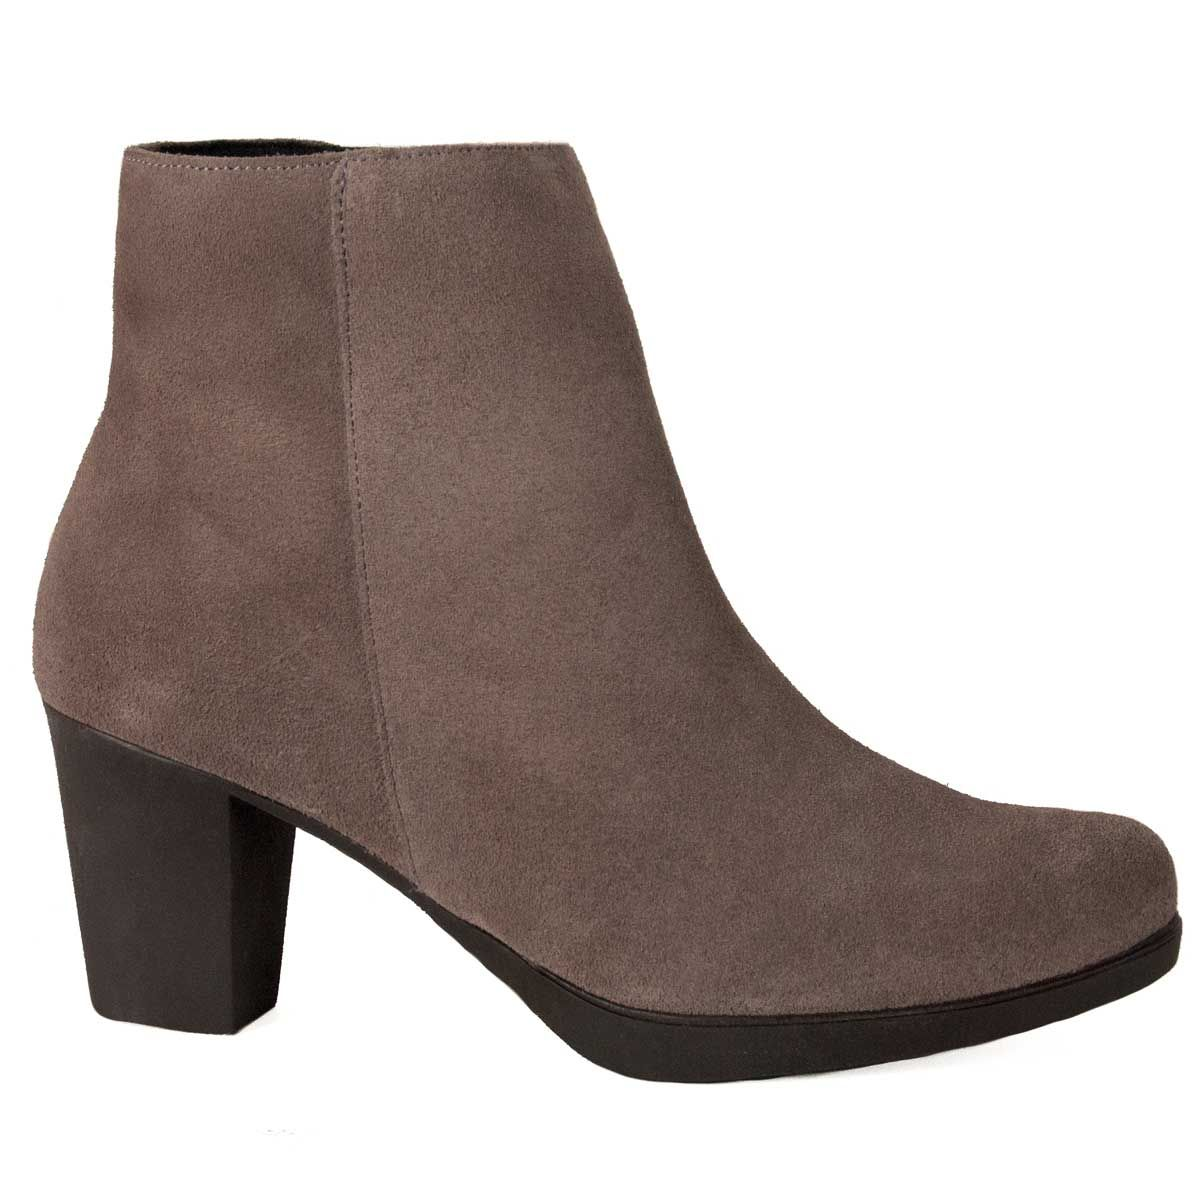 Purapiel Heeled Ankle Boot in Grey